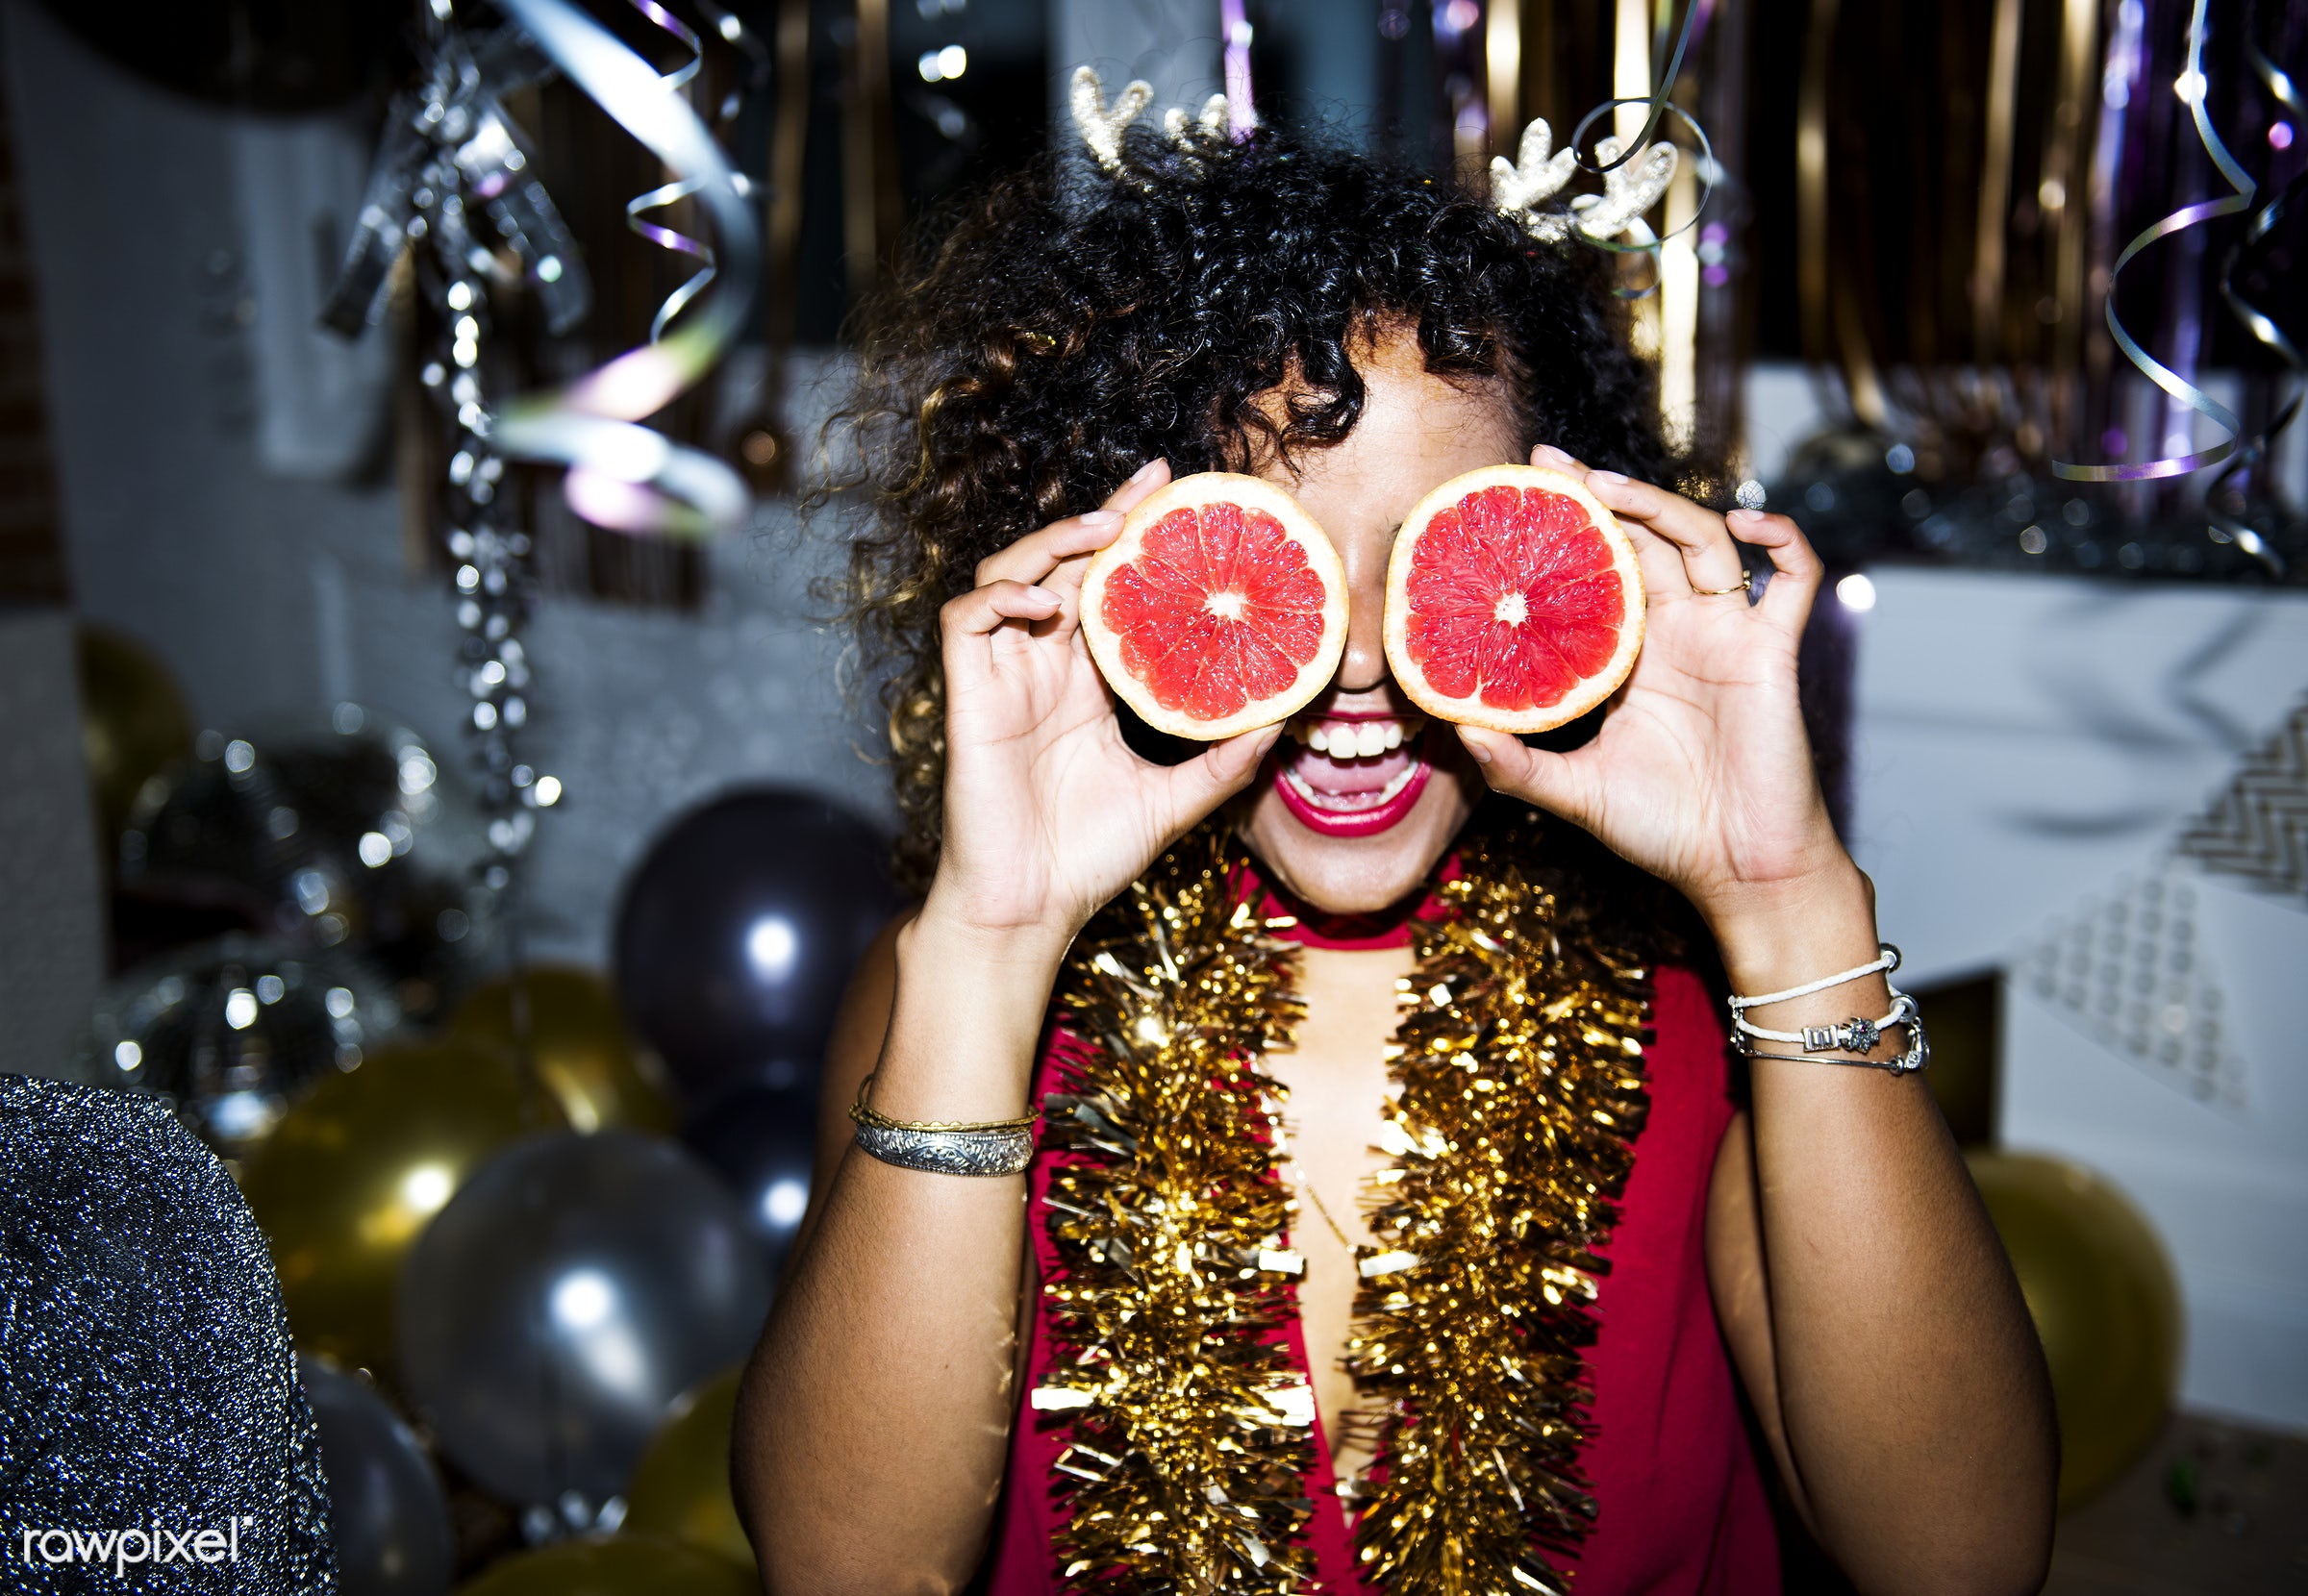 People having fun in a party - party, new year, food, woman, birthday, fun, funny, alone, 2018, african american, african...